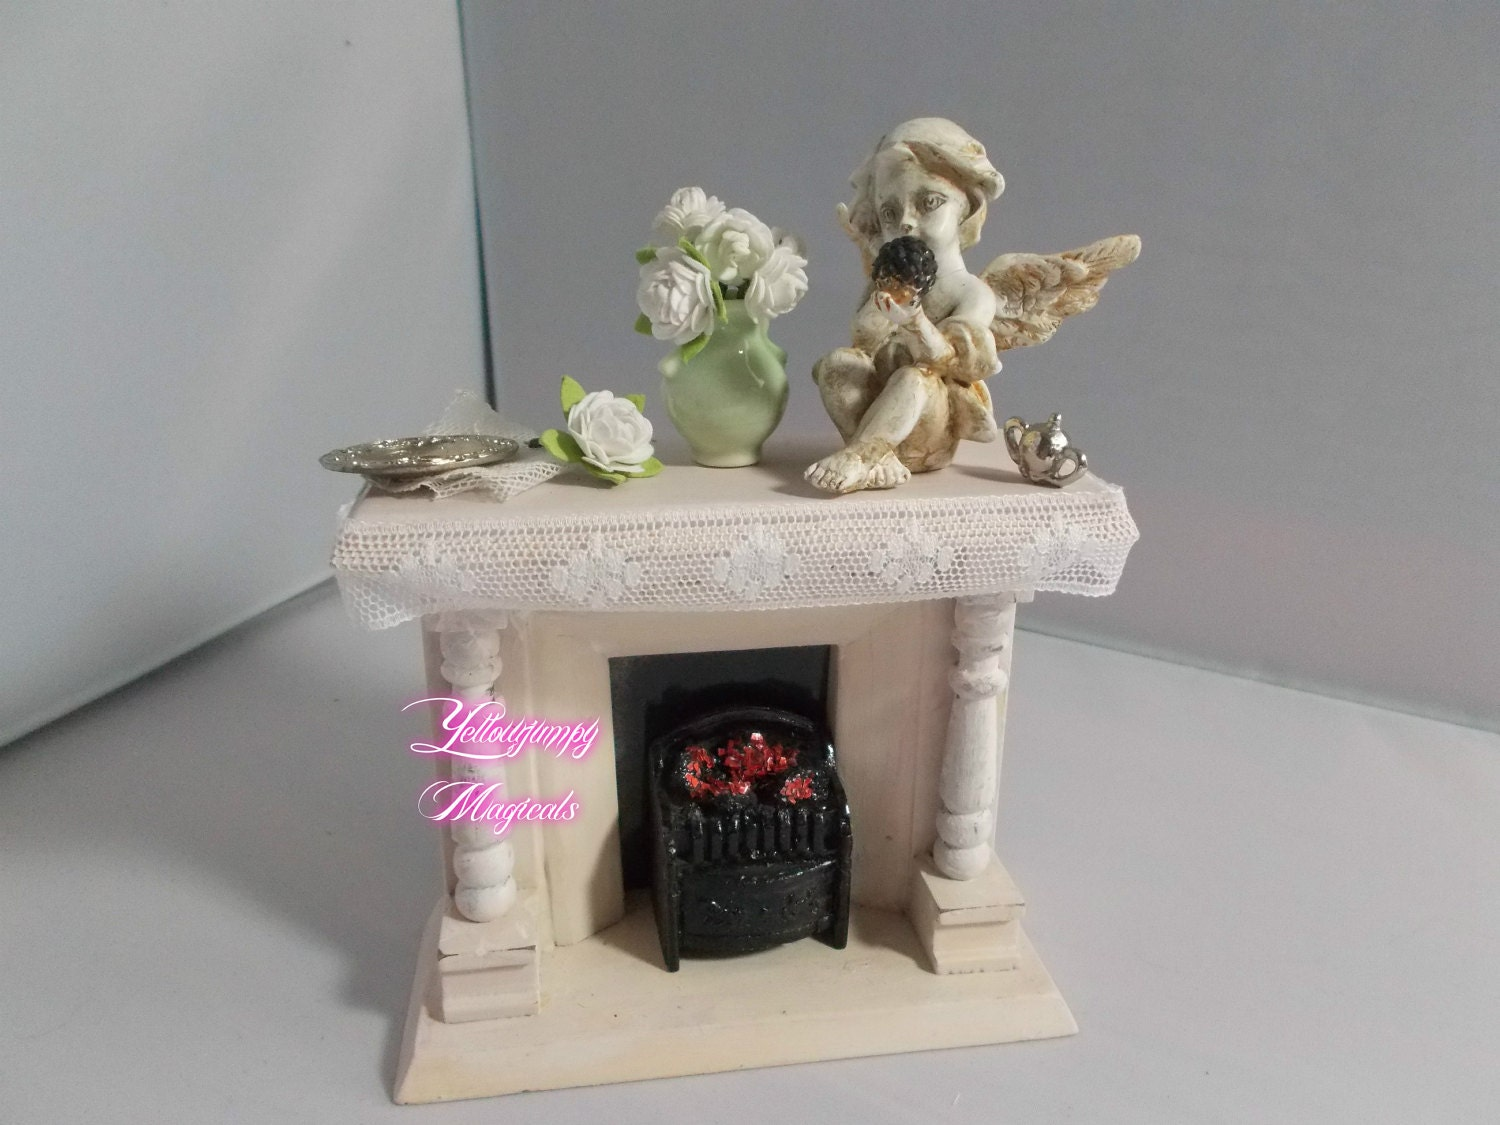 112th miniature dollhouse Shabby chic Fireplace with fire With Cherub statuette and white roses